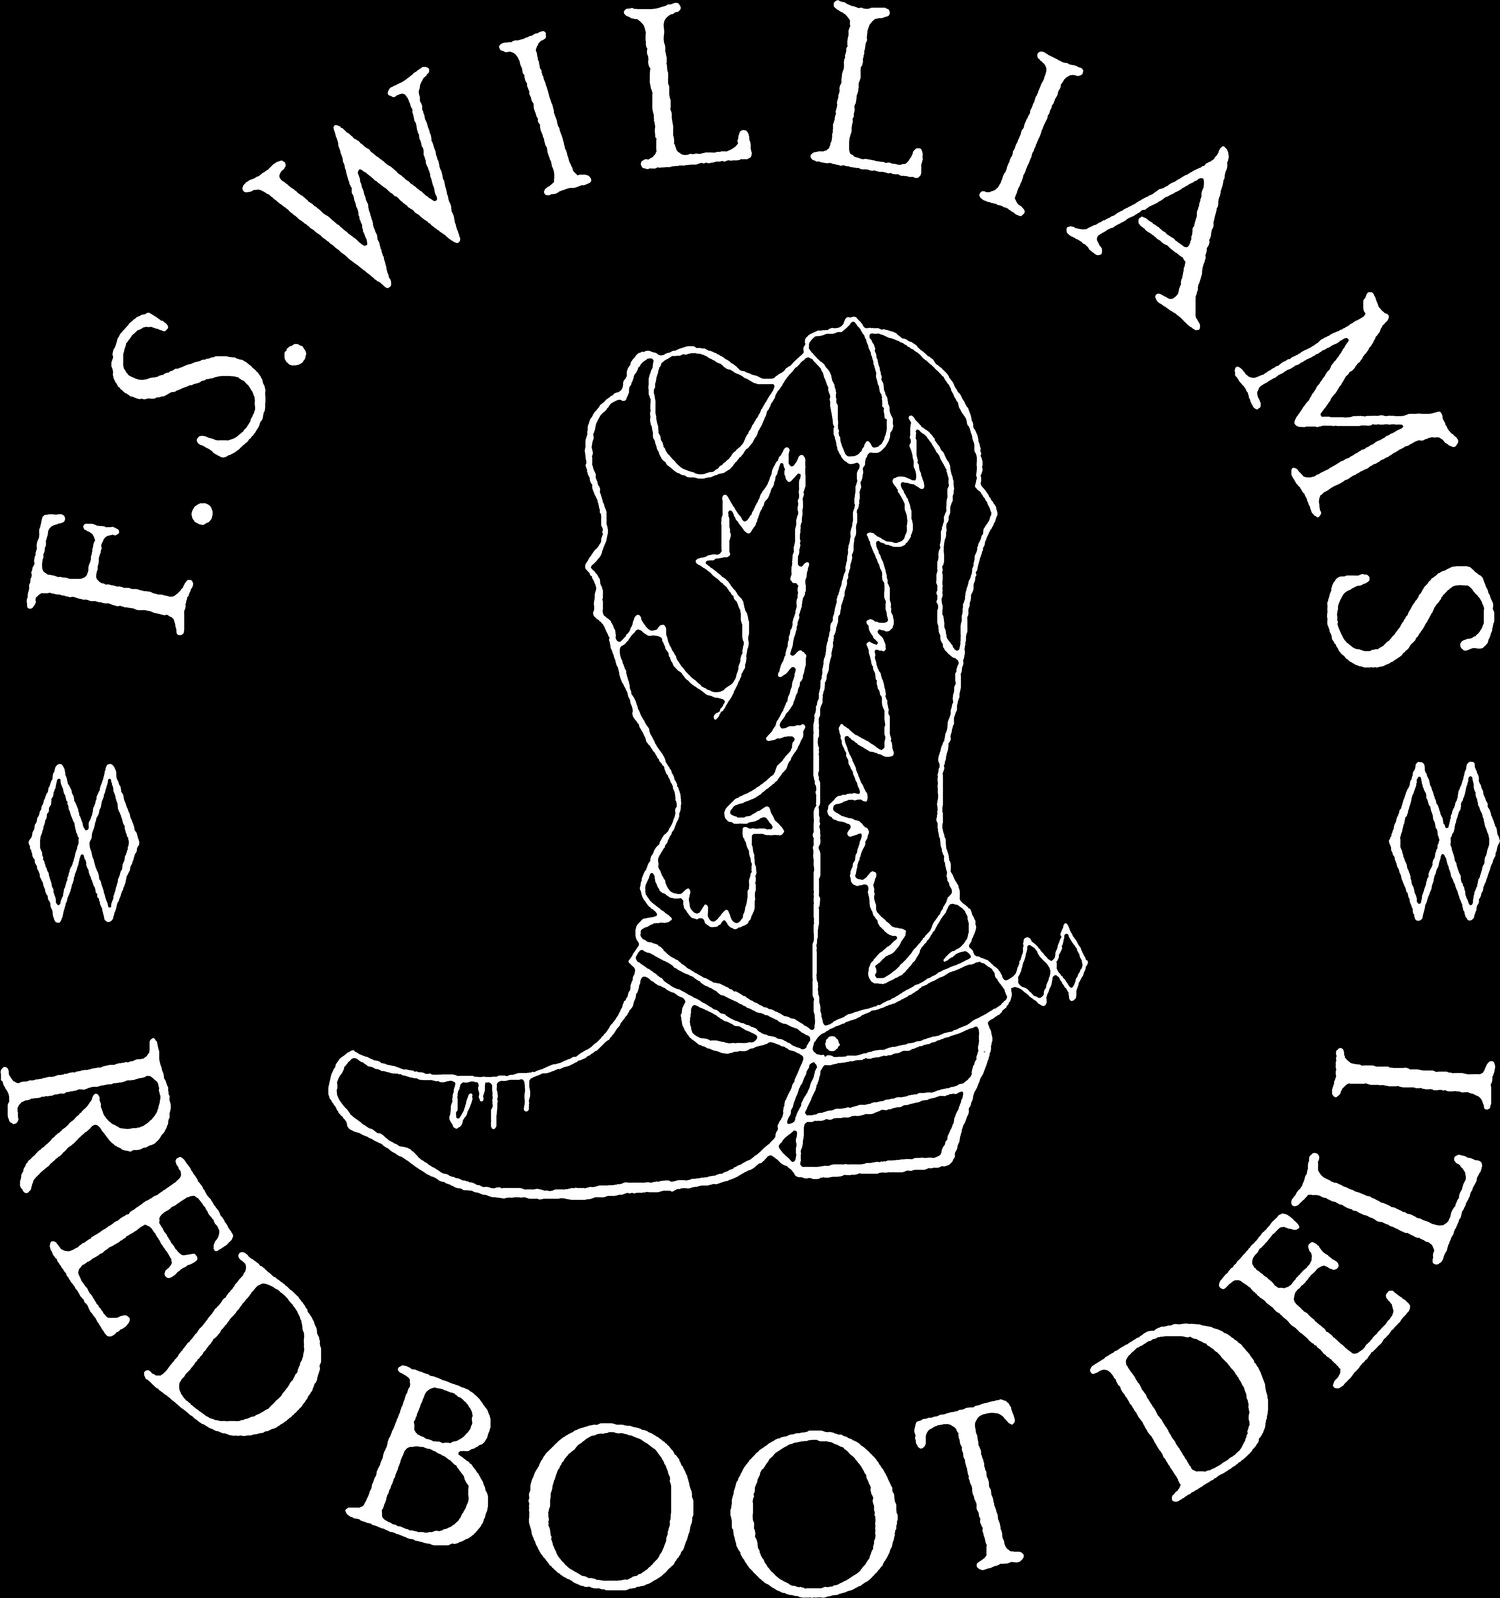 F.S. Williams Red Boot Deli